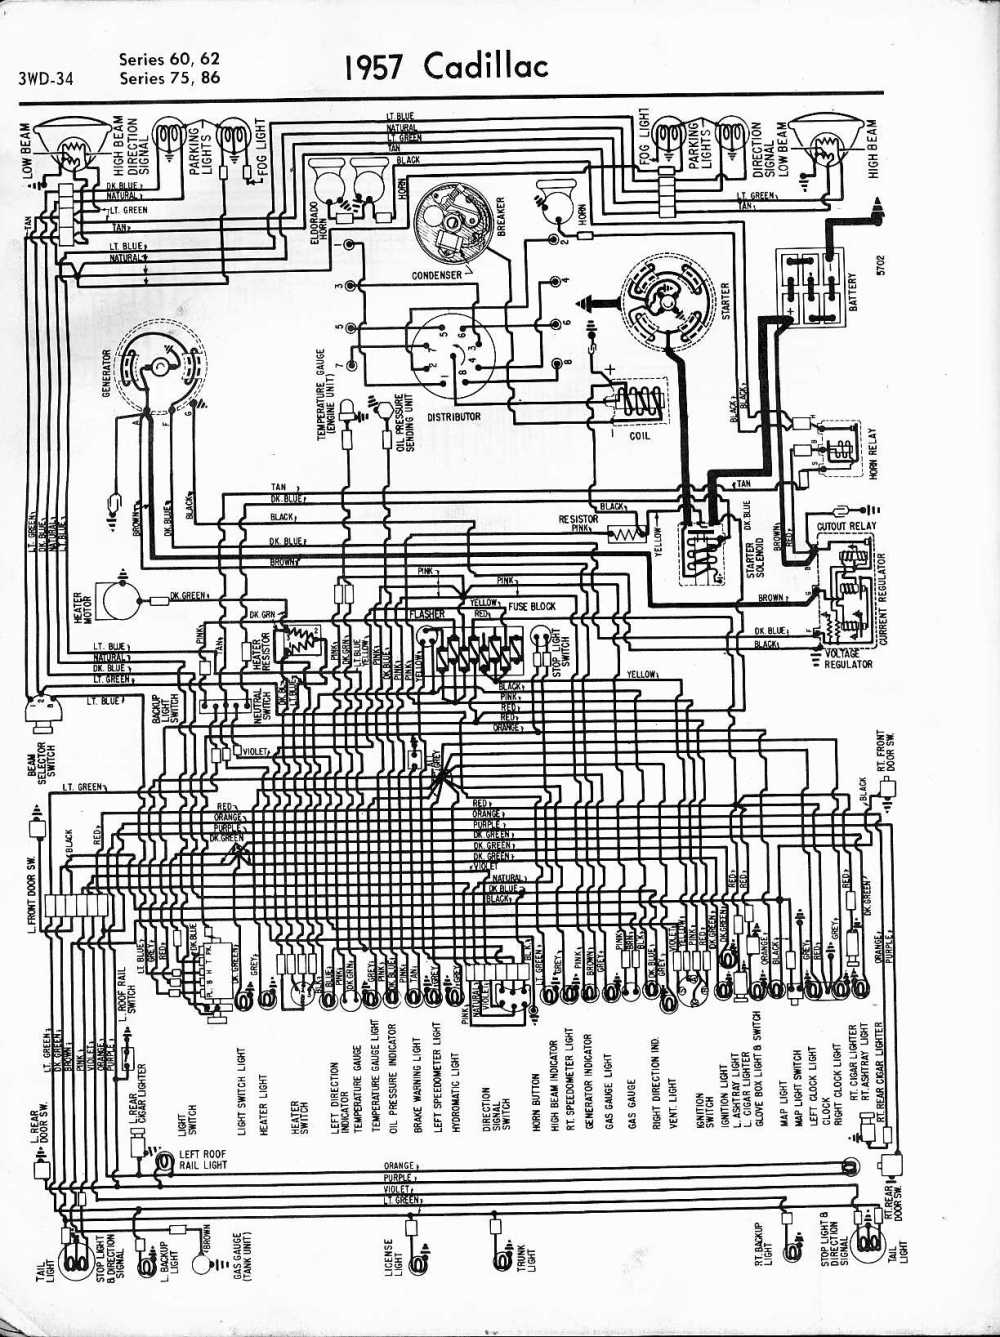 medium resolution of 1963 cadillac wiring harness wiring diagram today 2003 deville wiring harness cadillac wiring diagrams 1957 1965